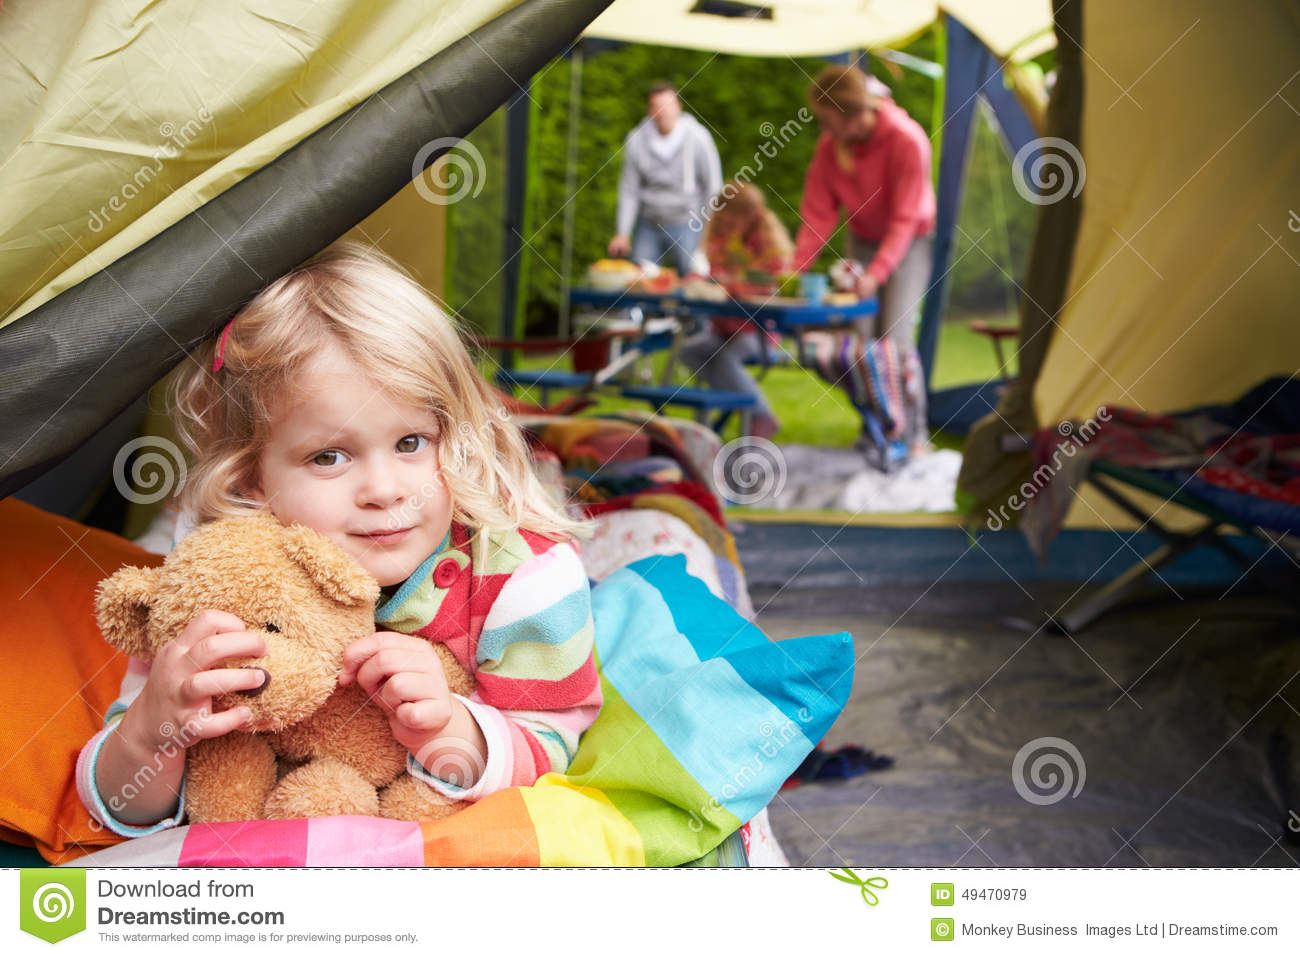 Flicka med Teddy Bear Enjoying Camping Holiday på campingplats